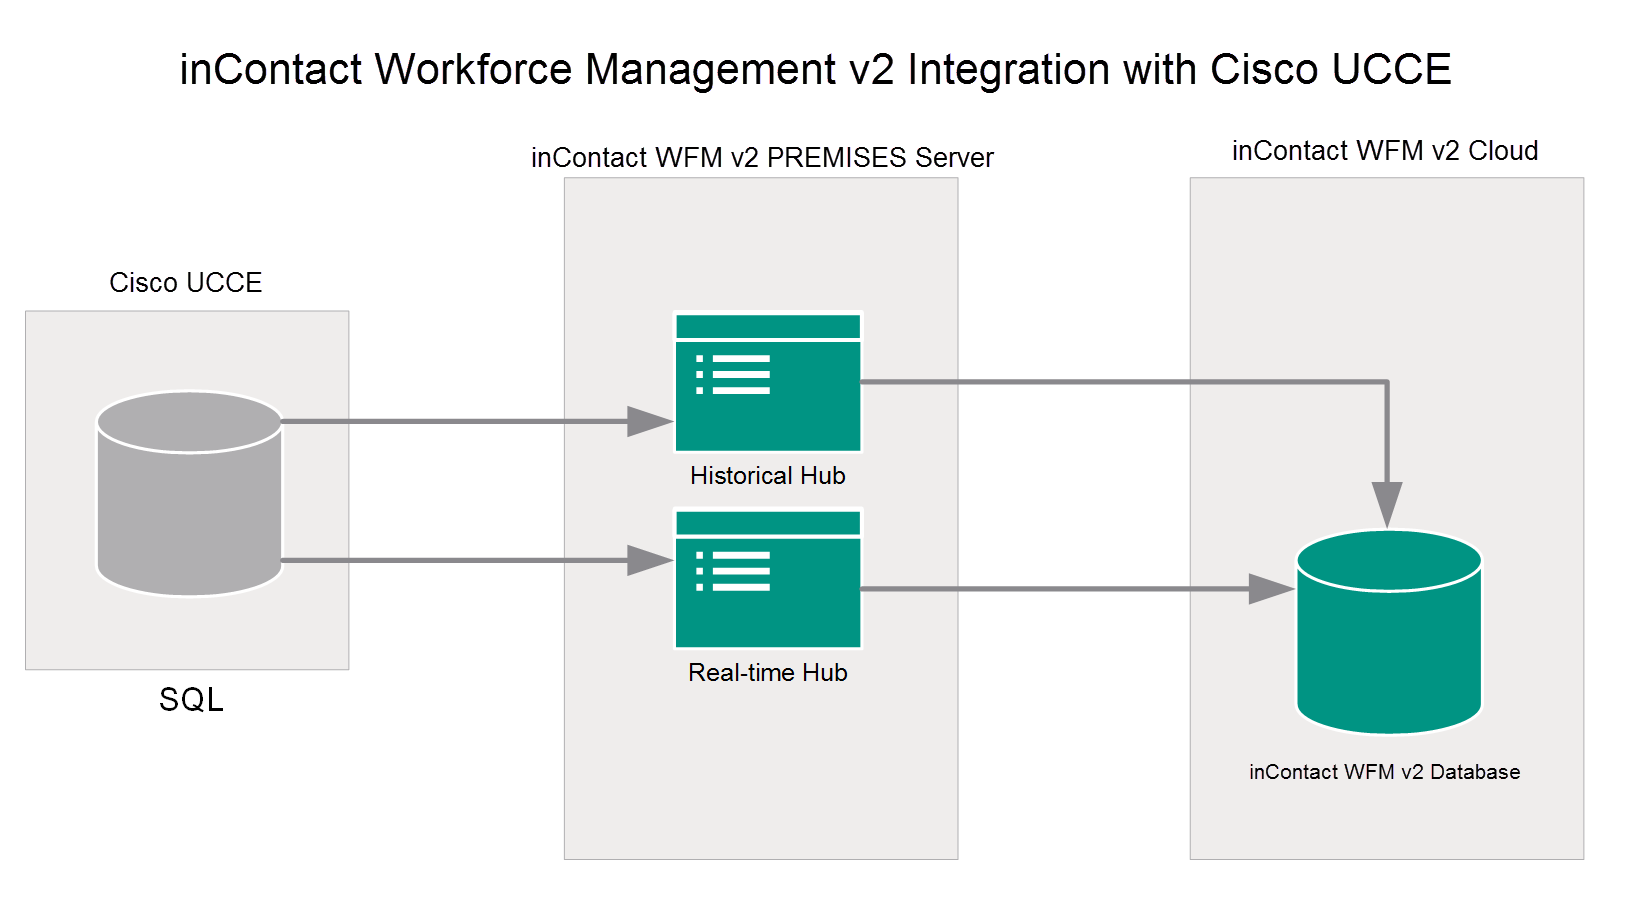 Cisco UCCE Integration Overview